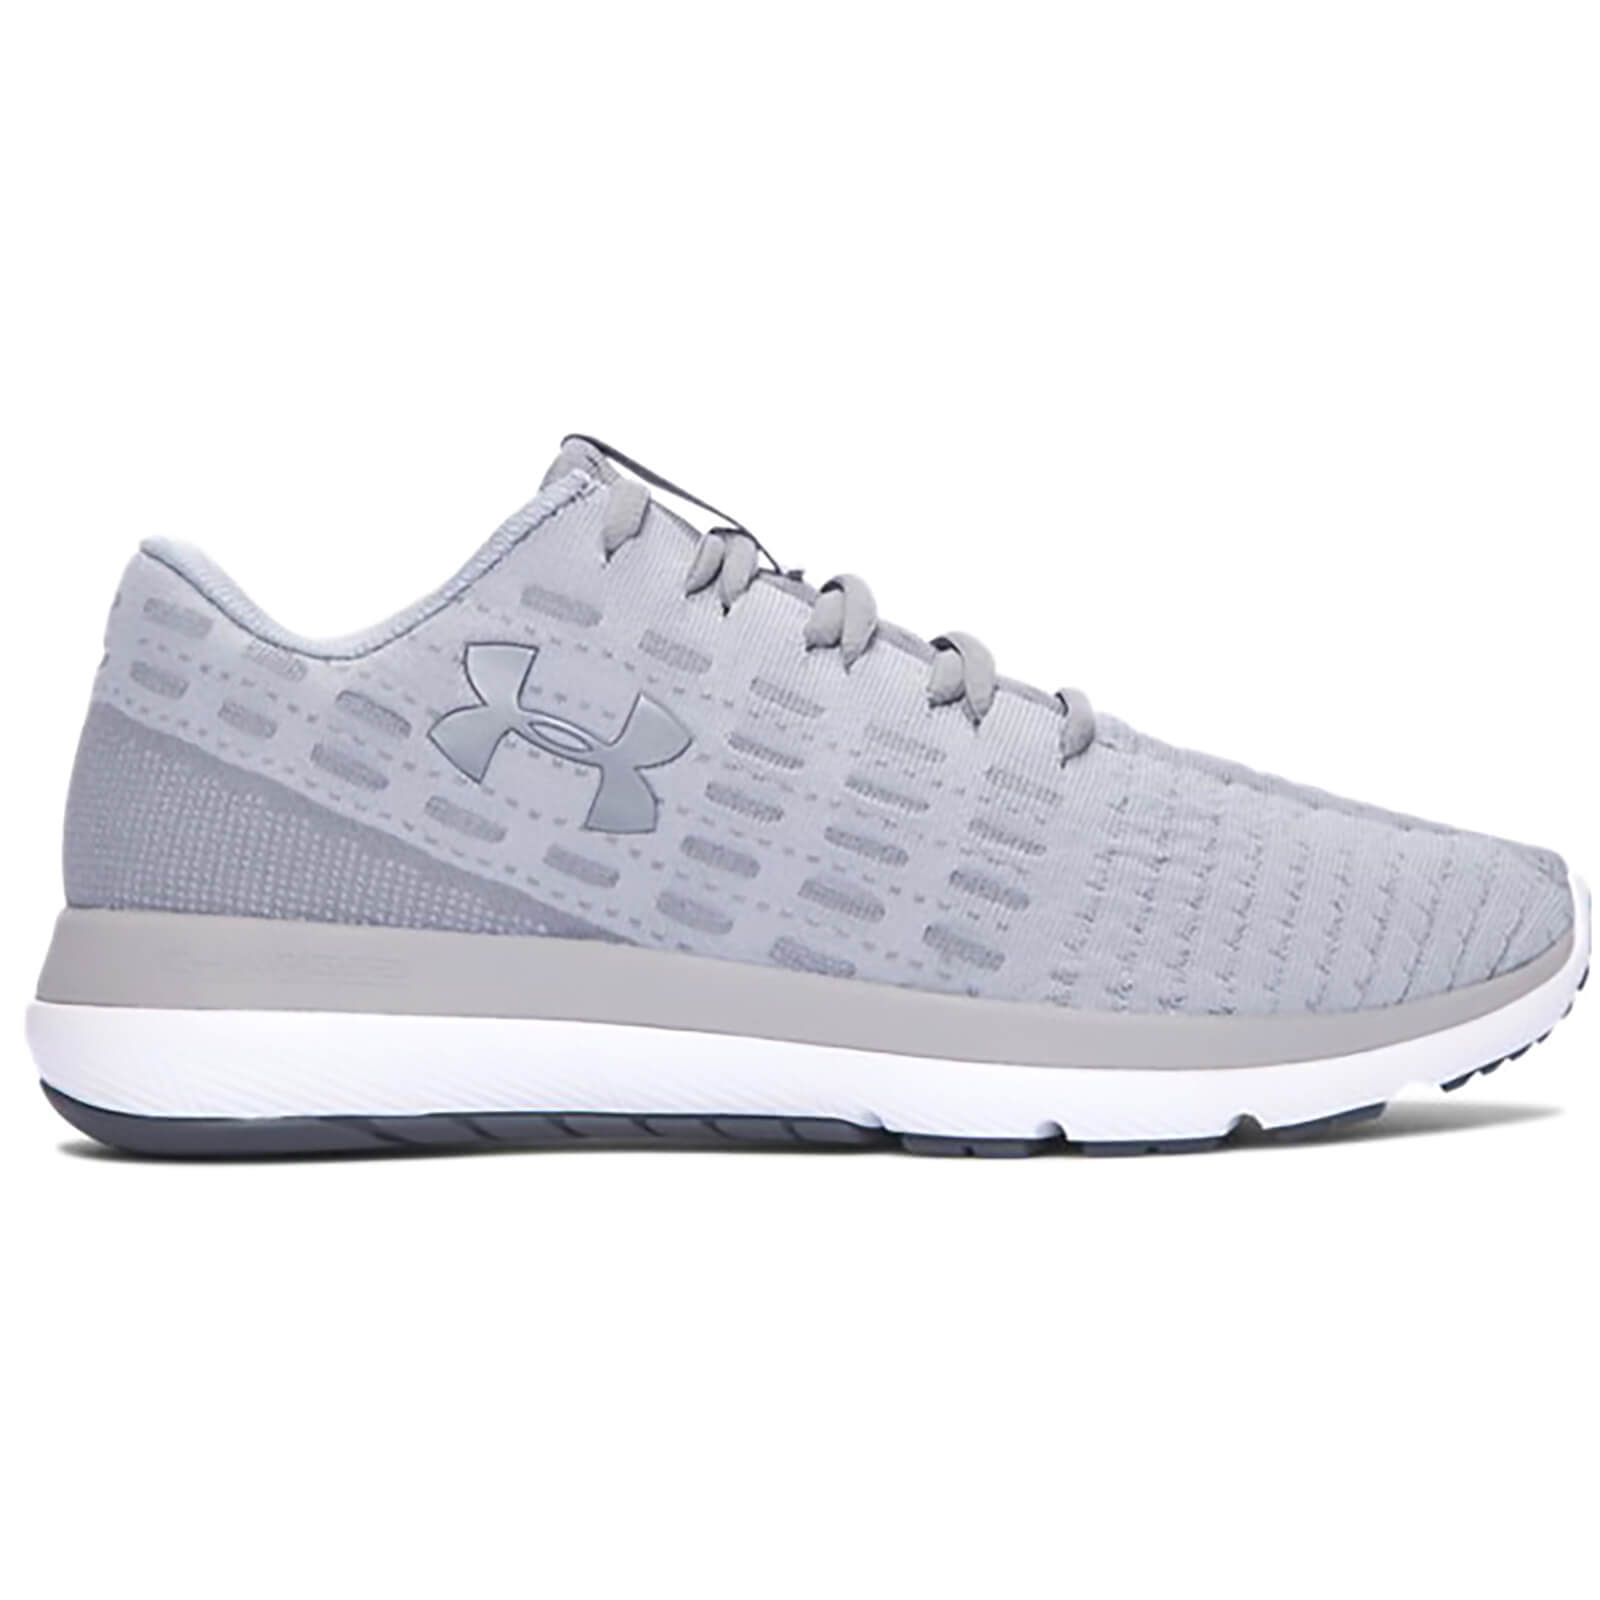 new product cf1ff 11995 Under Armour Women's Slingflex Running Shoes - Overcast Grey/White